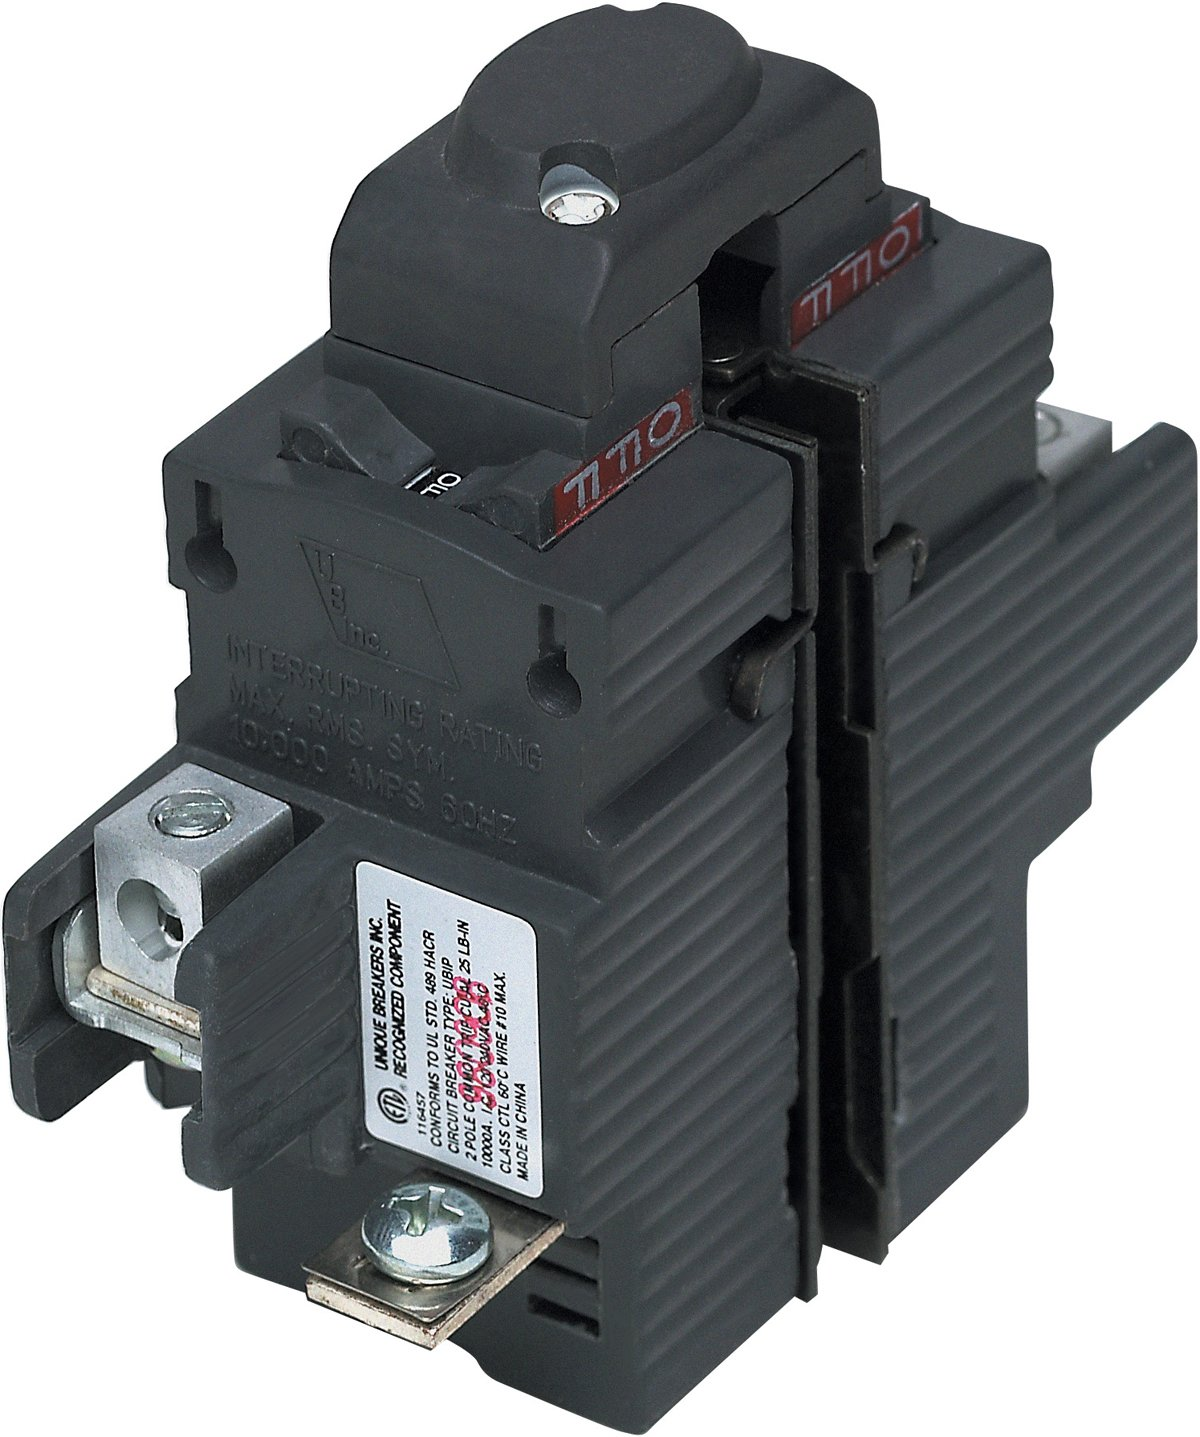 UBIP240-New Pushmatic P240 Replacement. Two Pole 40 Amp Circuit Breaker Manufactured by Connecticut Electric. by Connecticut Electric